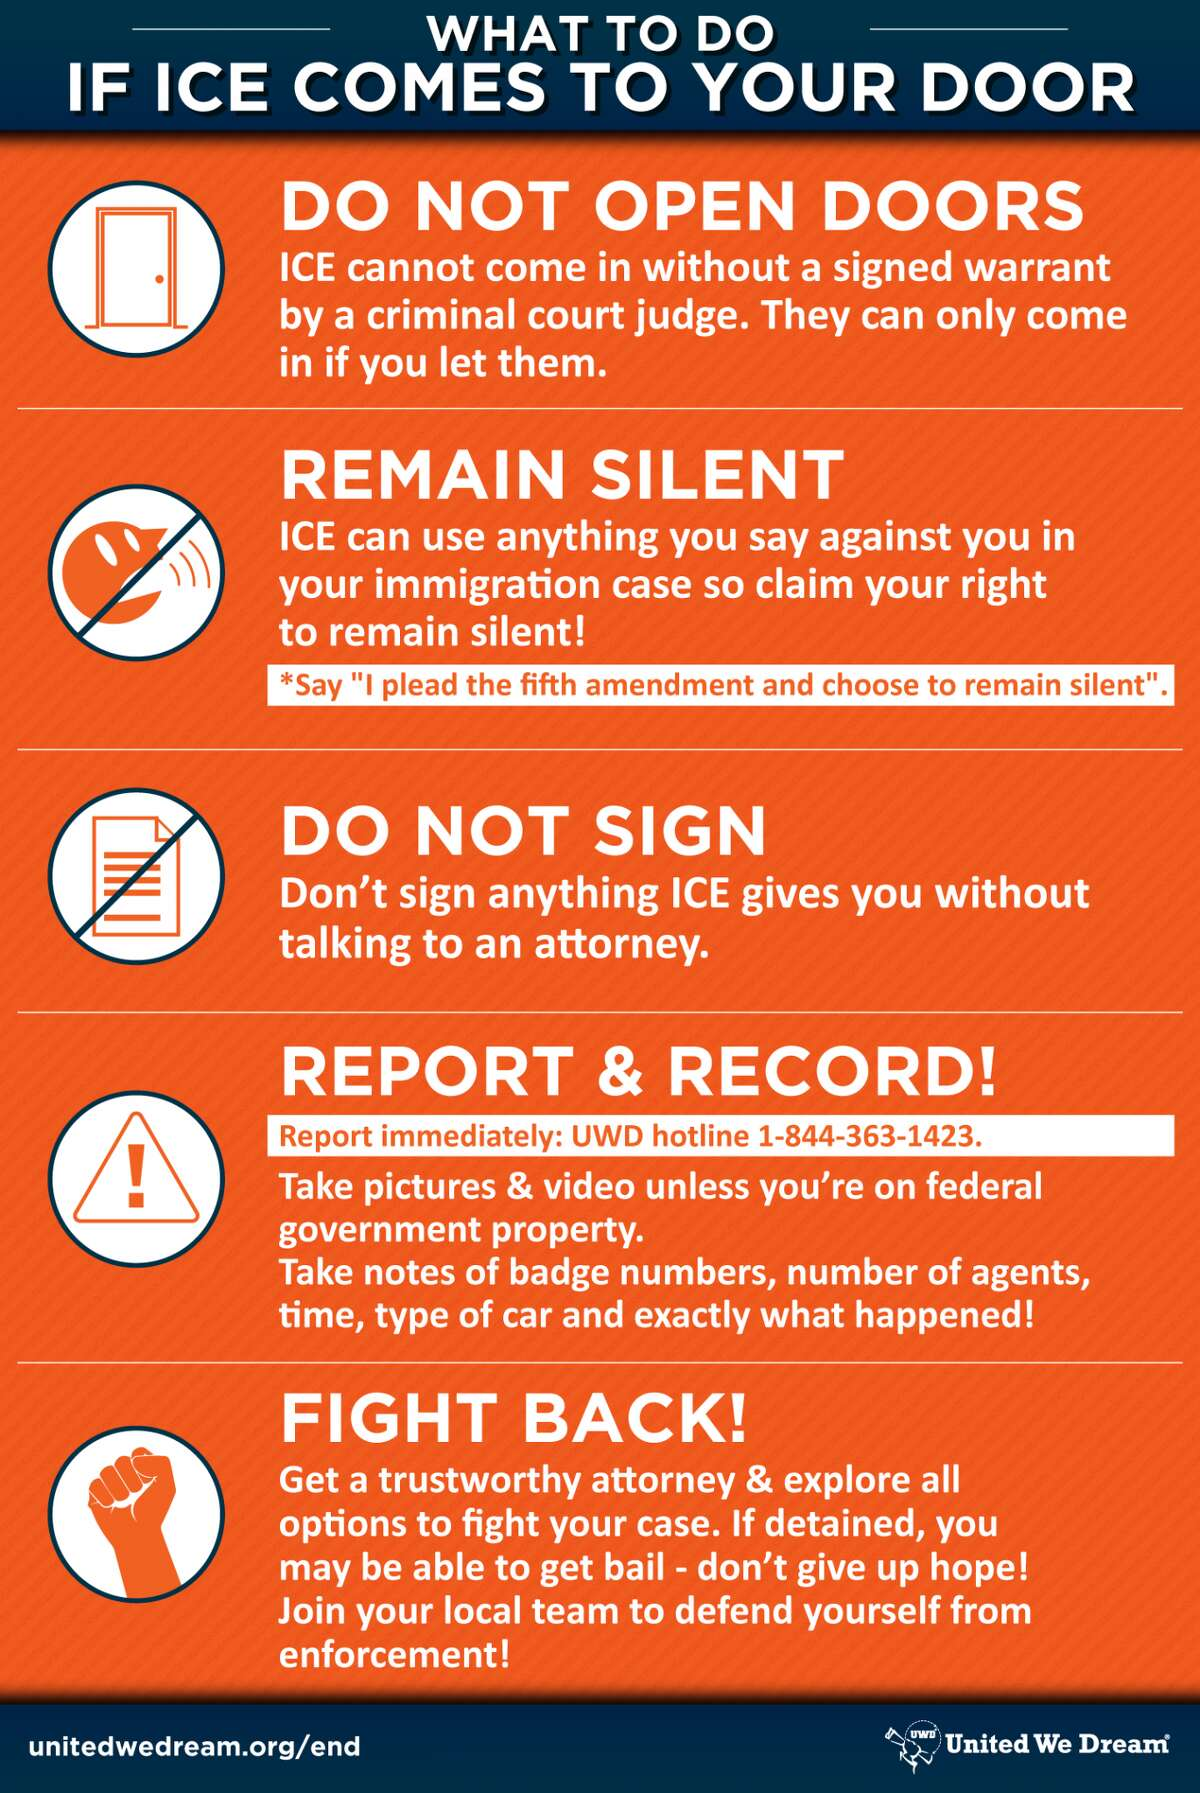 """United We Dream offers """"Deportation Defense Cards"""" in different languages. To download on a smartphone, hold your finger on the photo for three seconds, then choose """"Save Image."""" On a computer, right-click your mouse on the image, then choose """"Save As.""""(For more languages, scroll through the slideshow.)"""